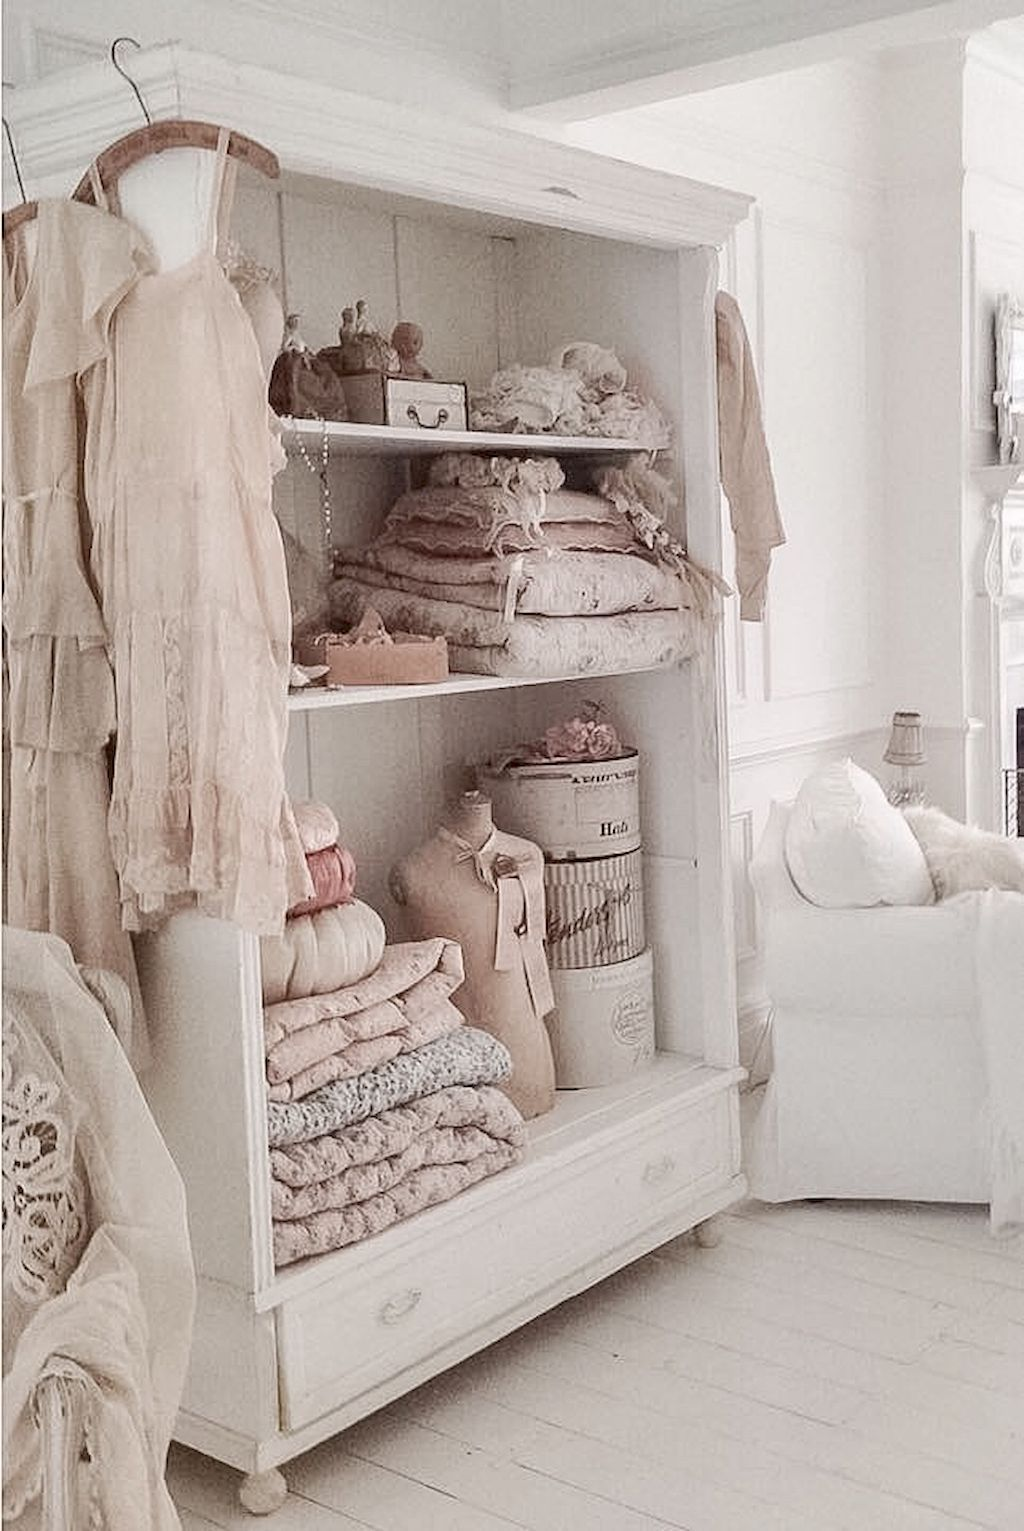 Shabby Chic Bedroom Decor on wicker bedroom decor, lilac and beige bedroom decor, thanksgiving bedroom decor, eclectic bedroom decor, country bedroom decor, modern antique bedroom decor, handmade bedroom decor, bohemian bedroom decor, farmhouse bedroom decor, tropical bedroom decor, primitive bedroom decor, interior design bedroom decor, rustic bedroom decor, food bedroom decor, leather bedroom decor, traditional simple bedroom decor, tuscan master bedroom decor, vintage bedroom decor, simple master bedroom decor, distressed bedroom decor,